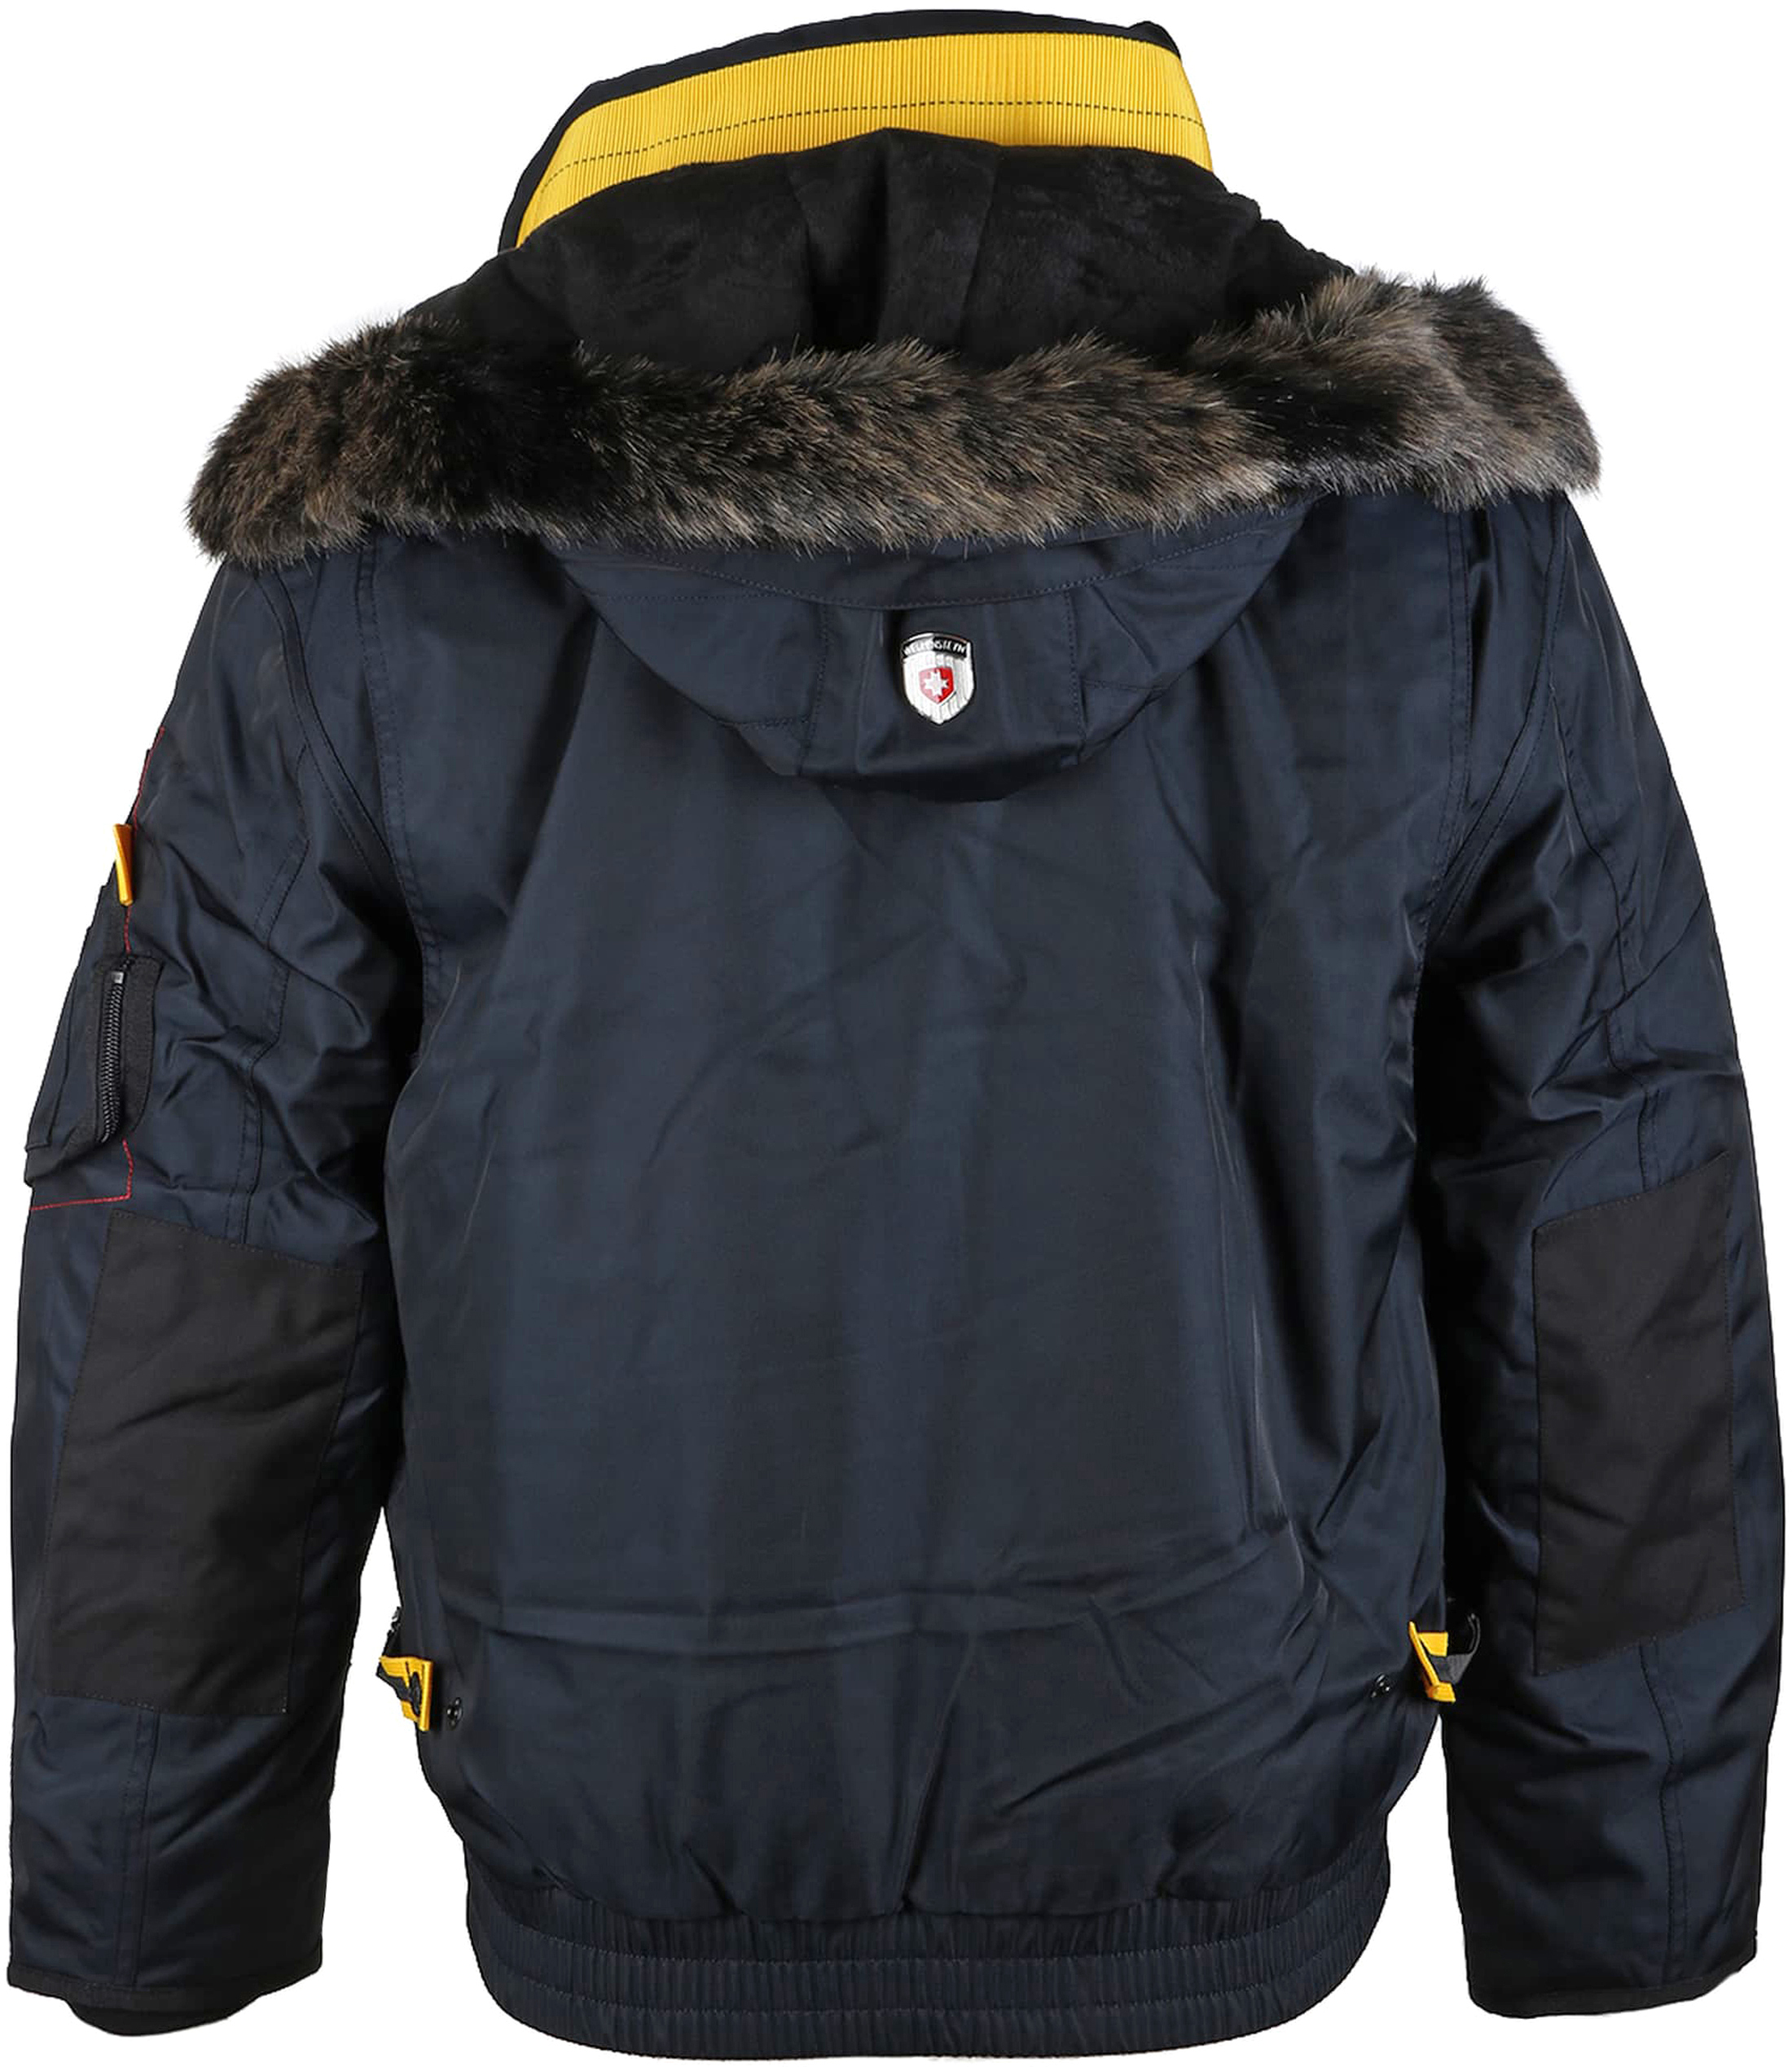 Wellensteyn Rescue Jacket Dunkelblau foto 2